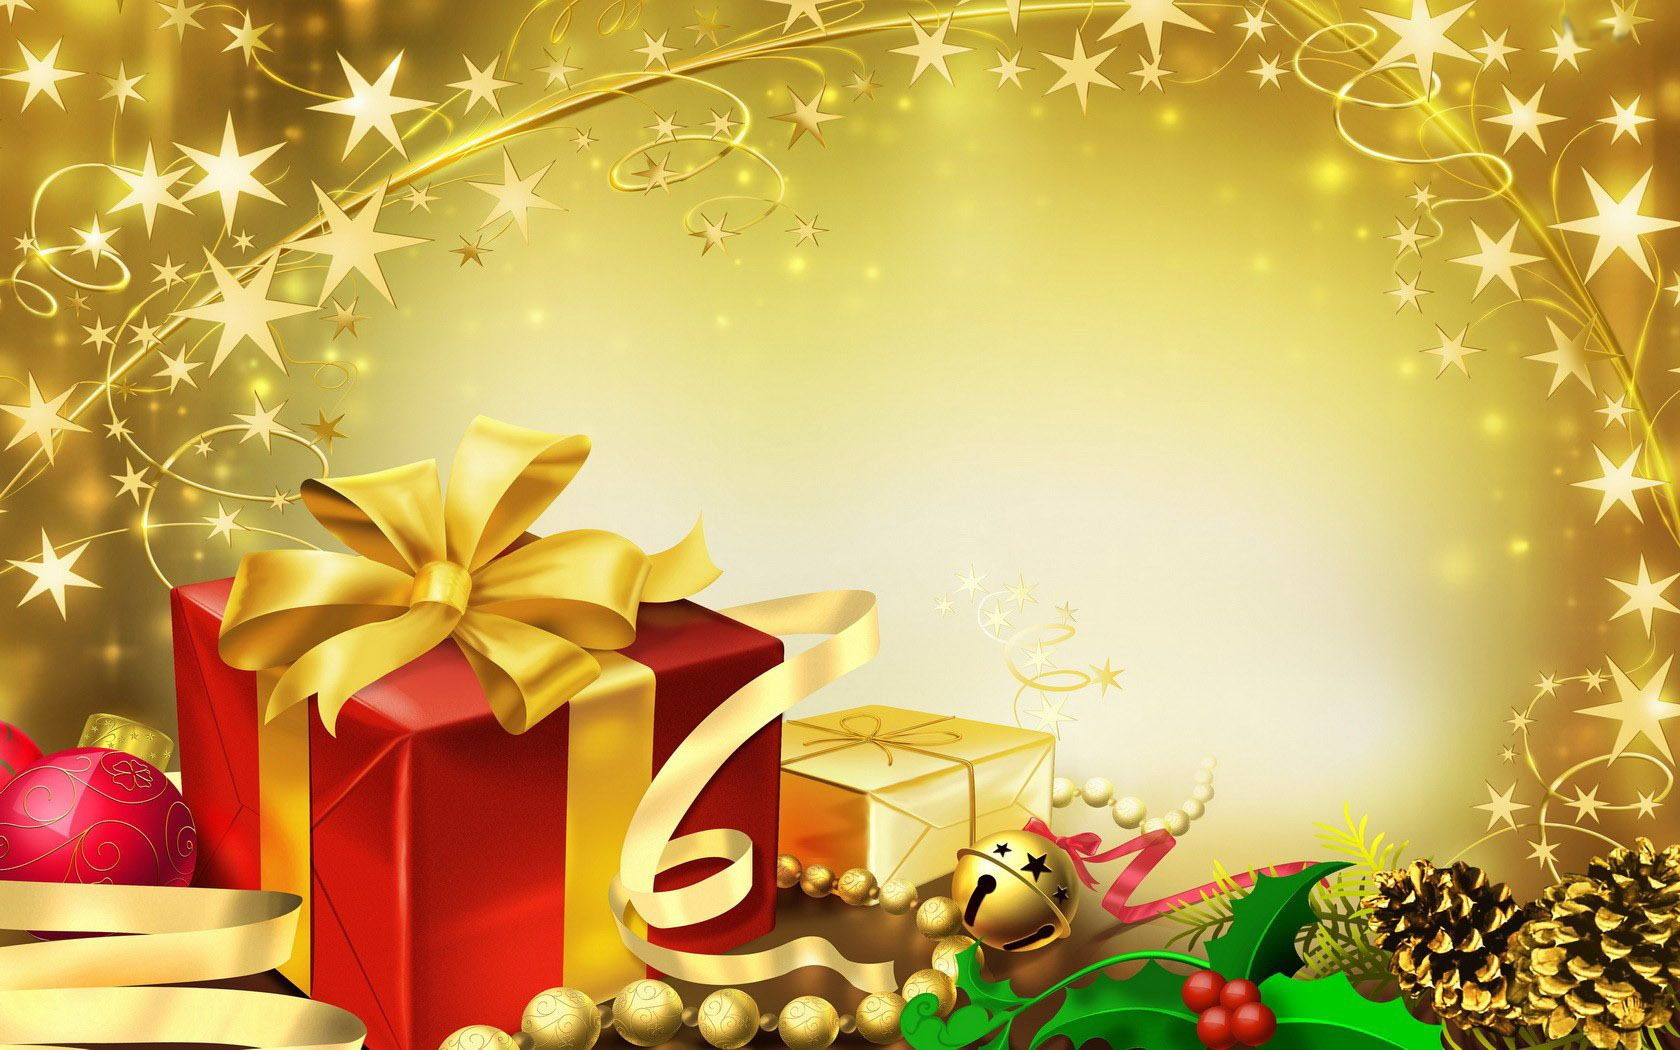 Background clipart christmas vector free stock free christmas background clipart | Christmas Wallpaper image ... vector free stock